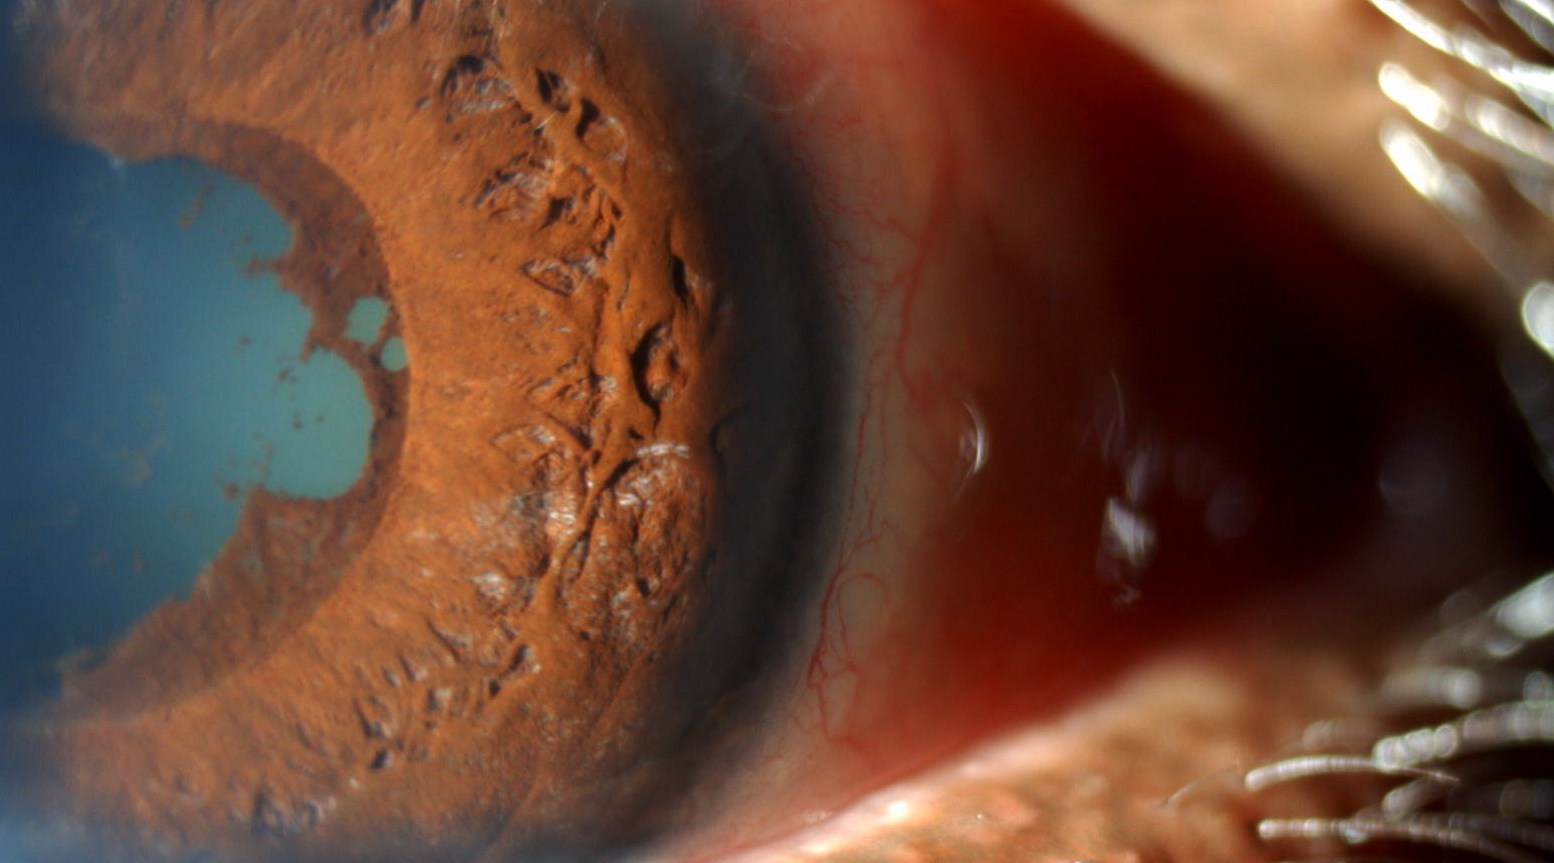 Multidisciplinary Partnerships in the Management of Uveitis in Patients With Rheumatic Disease